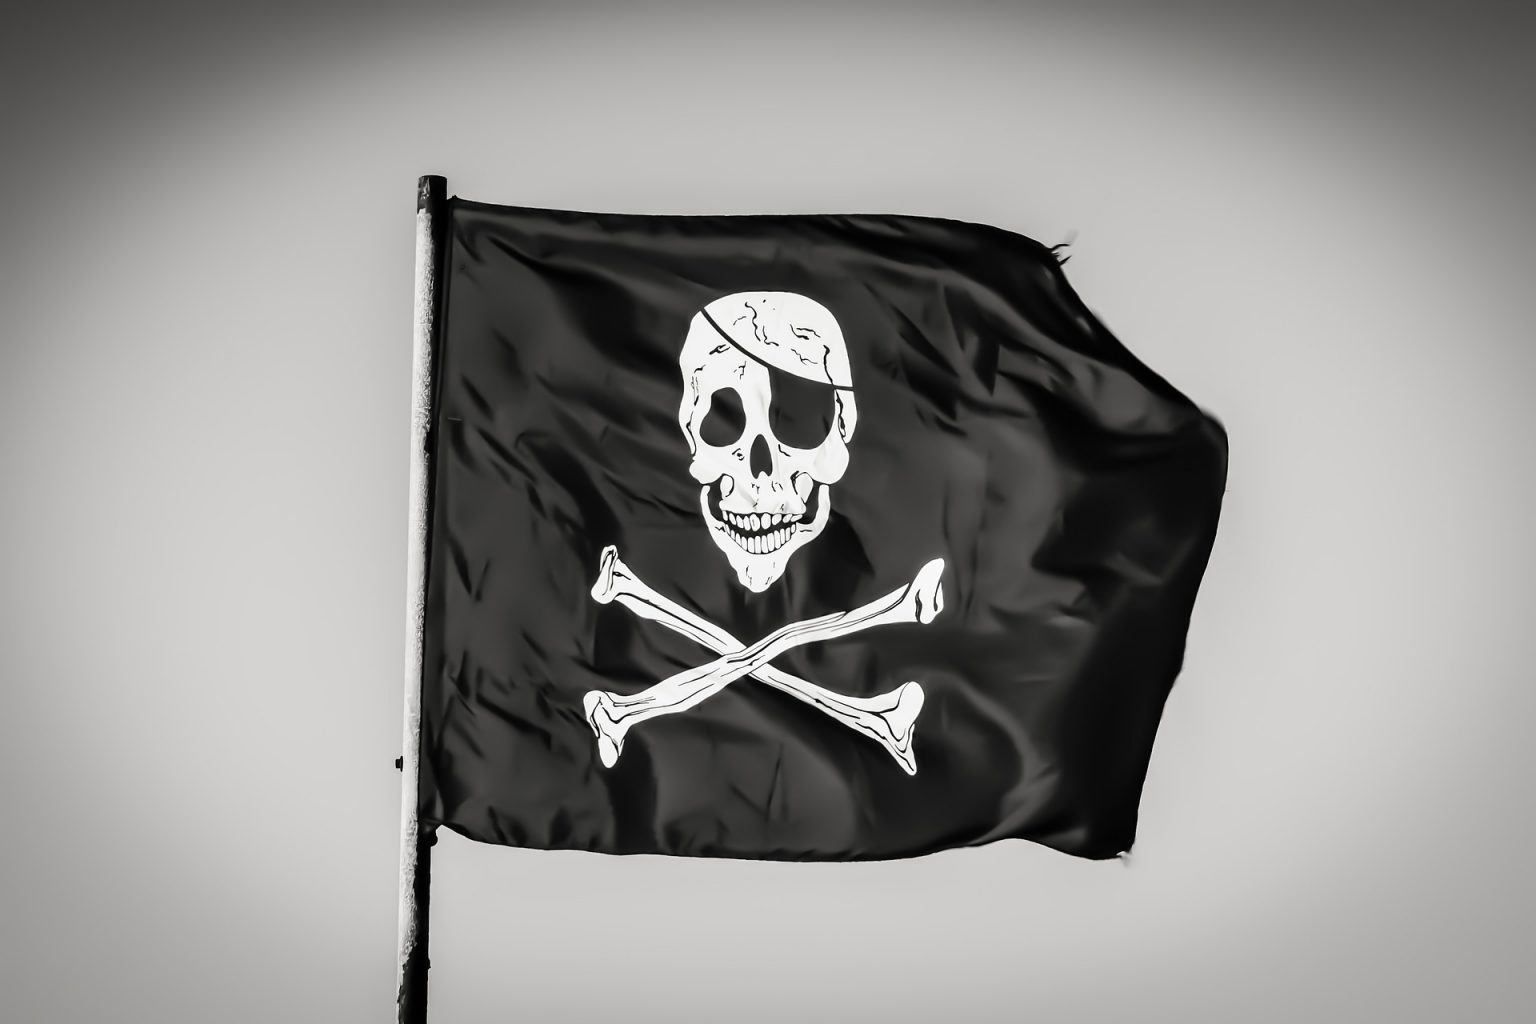 2017 Piracy Assessment and Avoidance Methods from Piracy Attacks